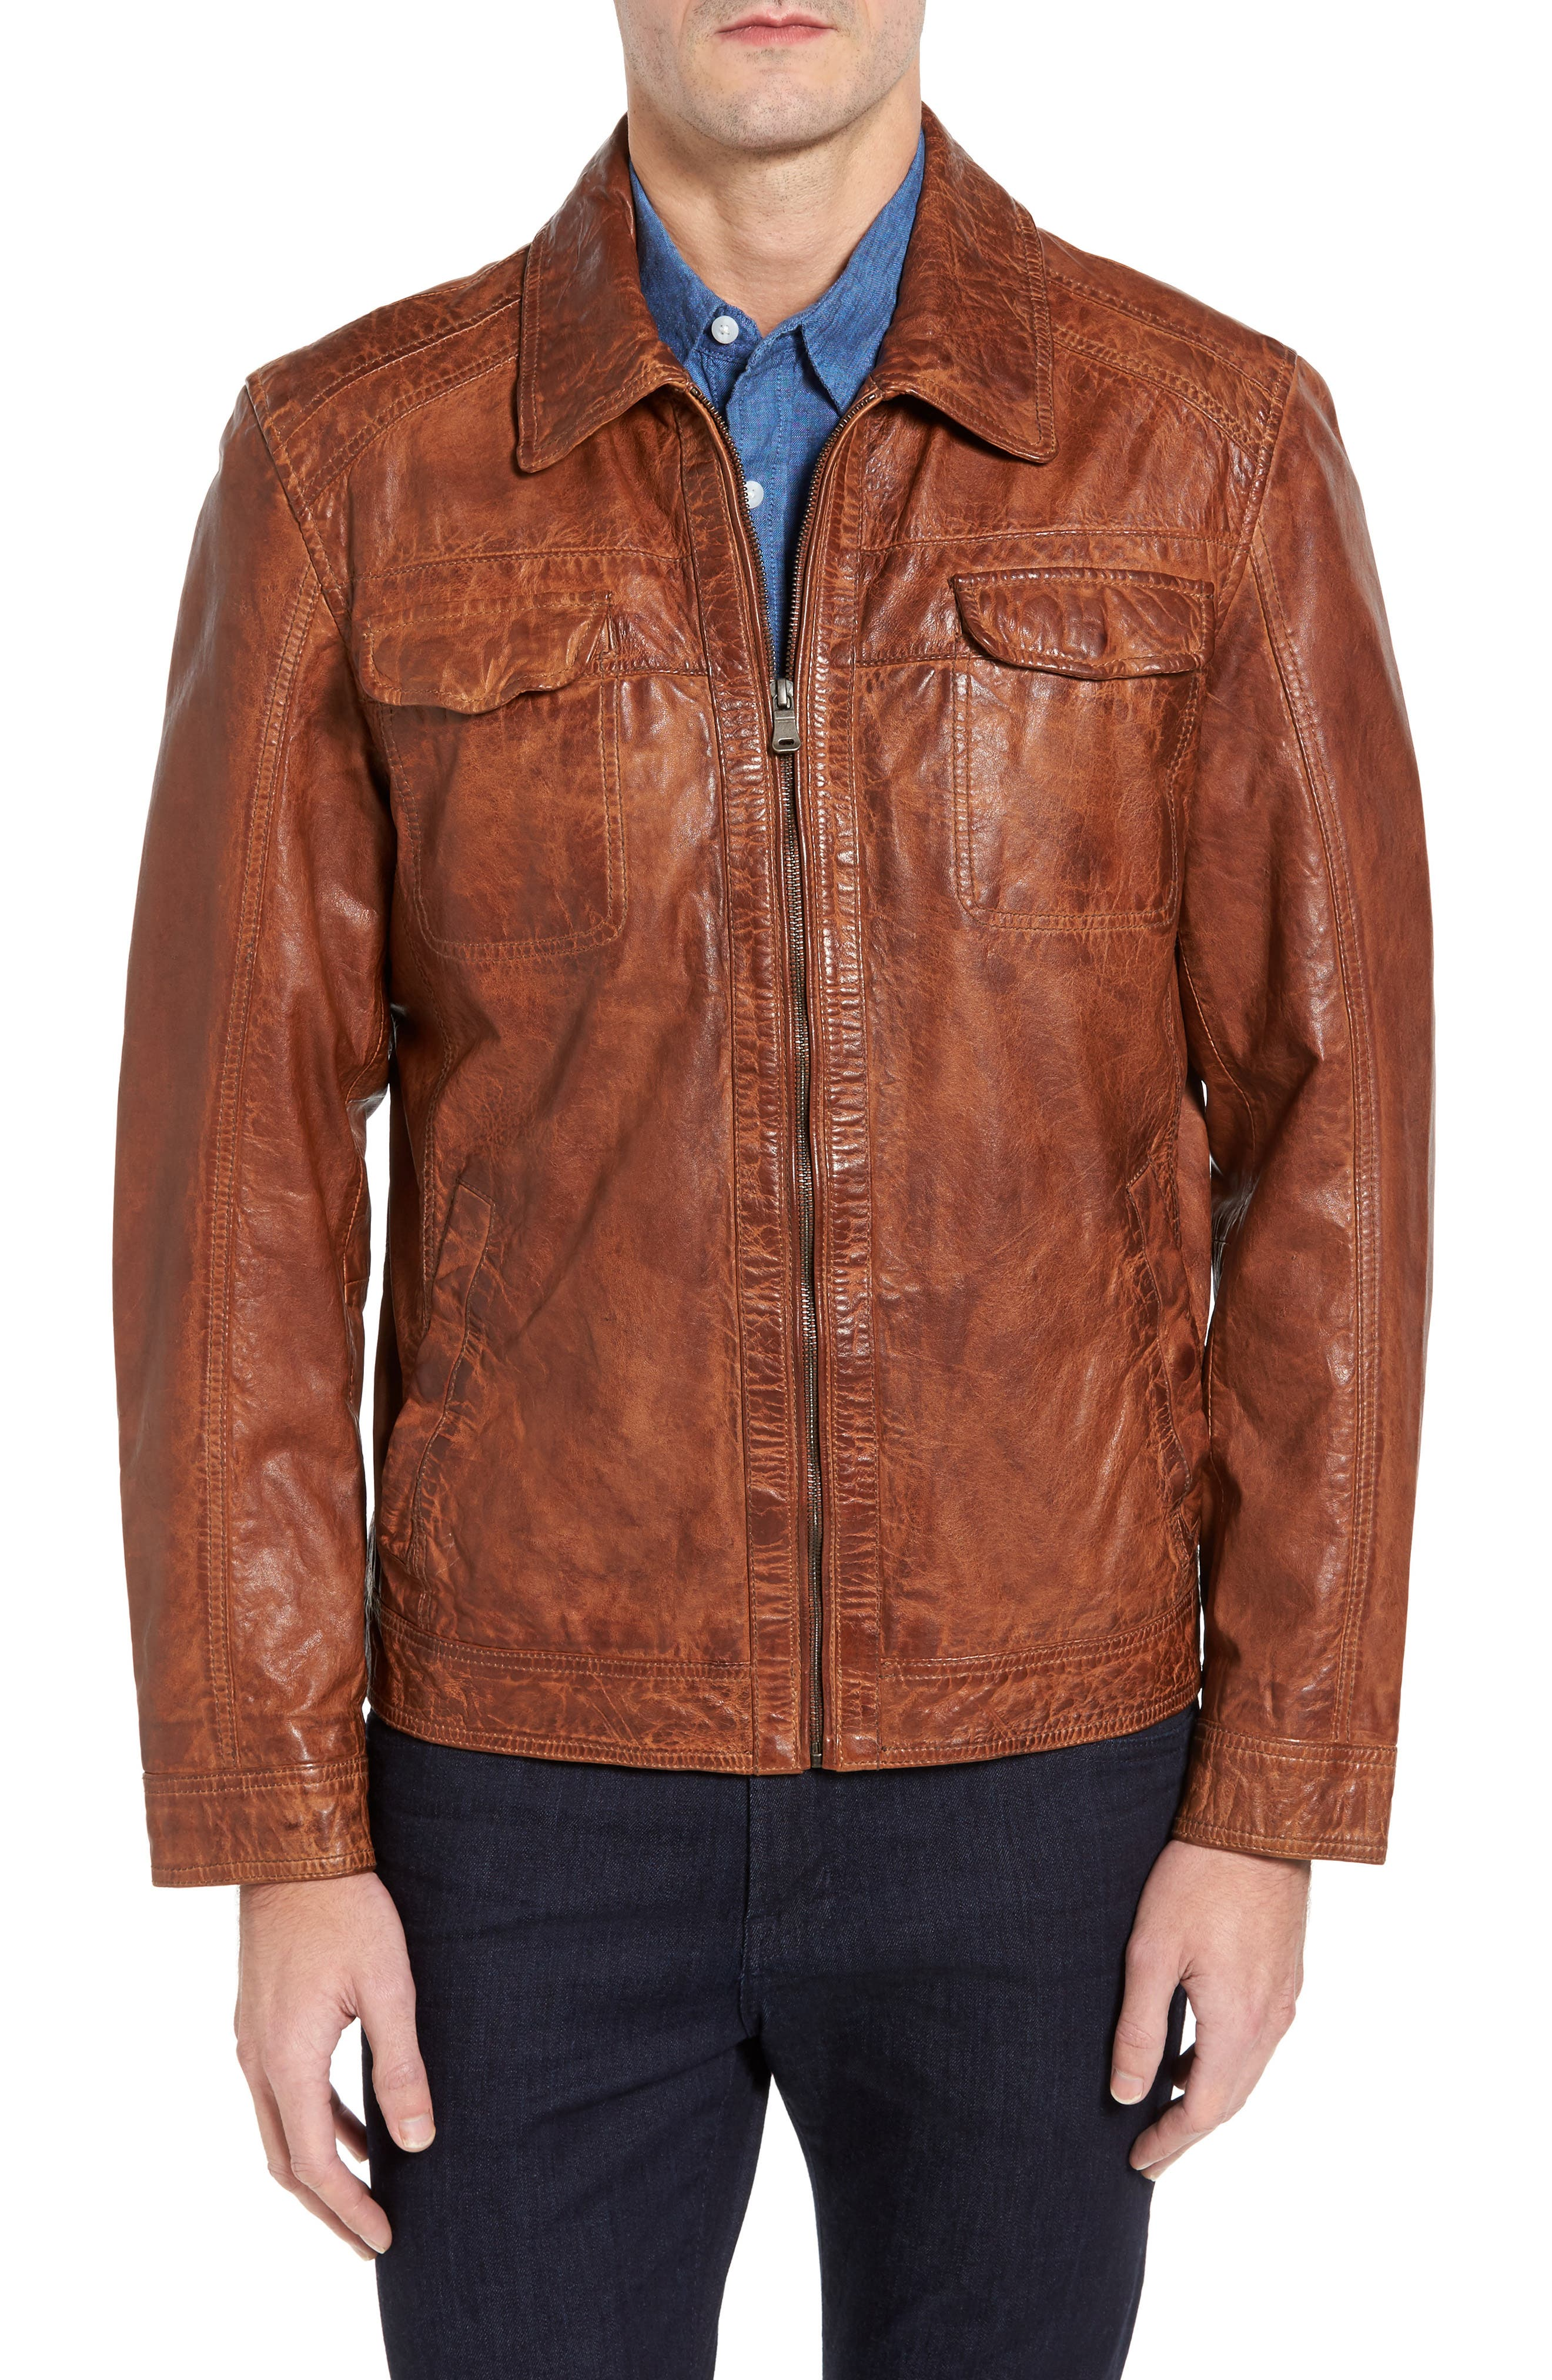 MISSANI LE COLLEZIONI Washed Lamb Leather Jacket